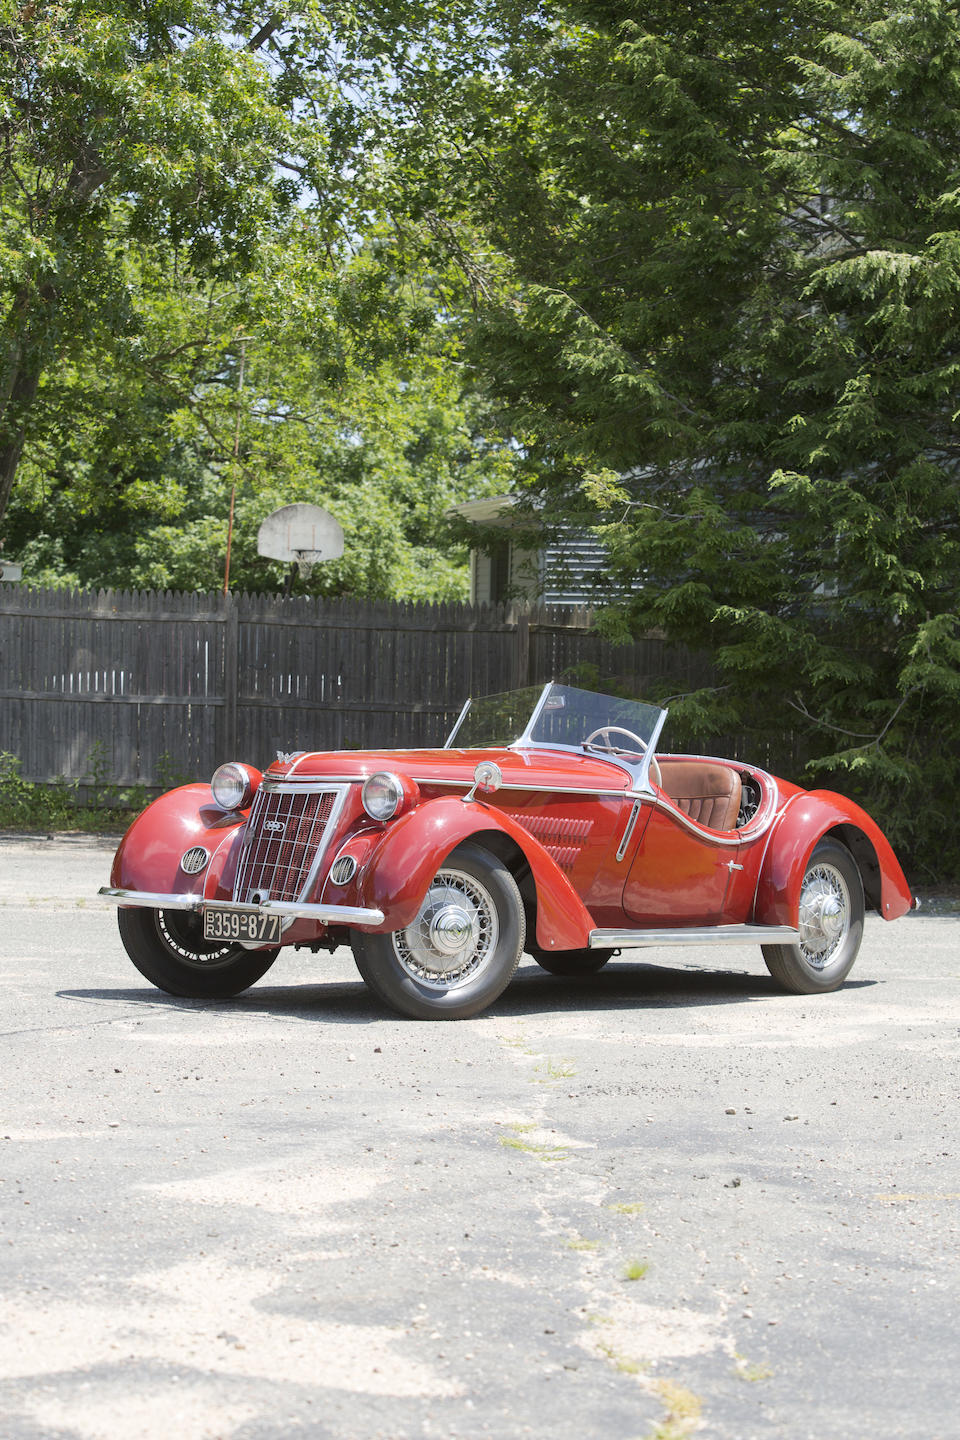 <i>Offered from a prominent European Collection</i><br /><b>1936 WANDERER W25 K ROADSTER  </b><br />Chassis no. 252702 <br />Engine no. 252922